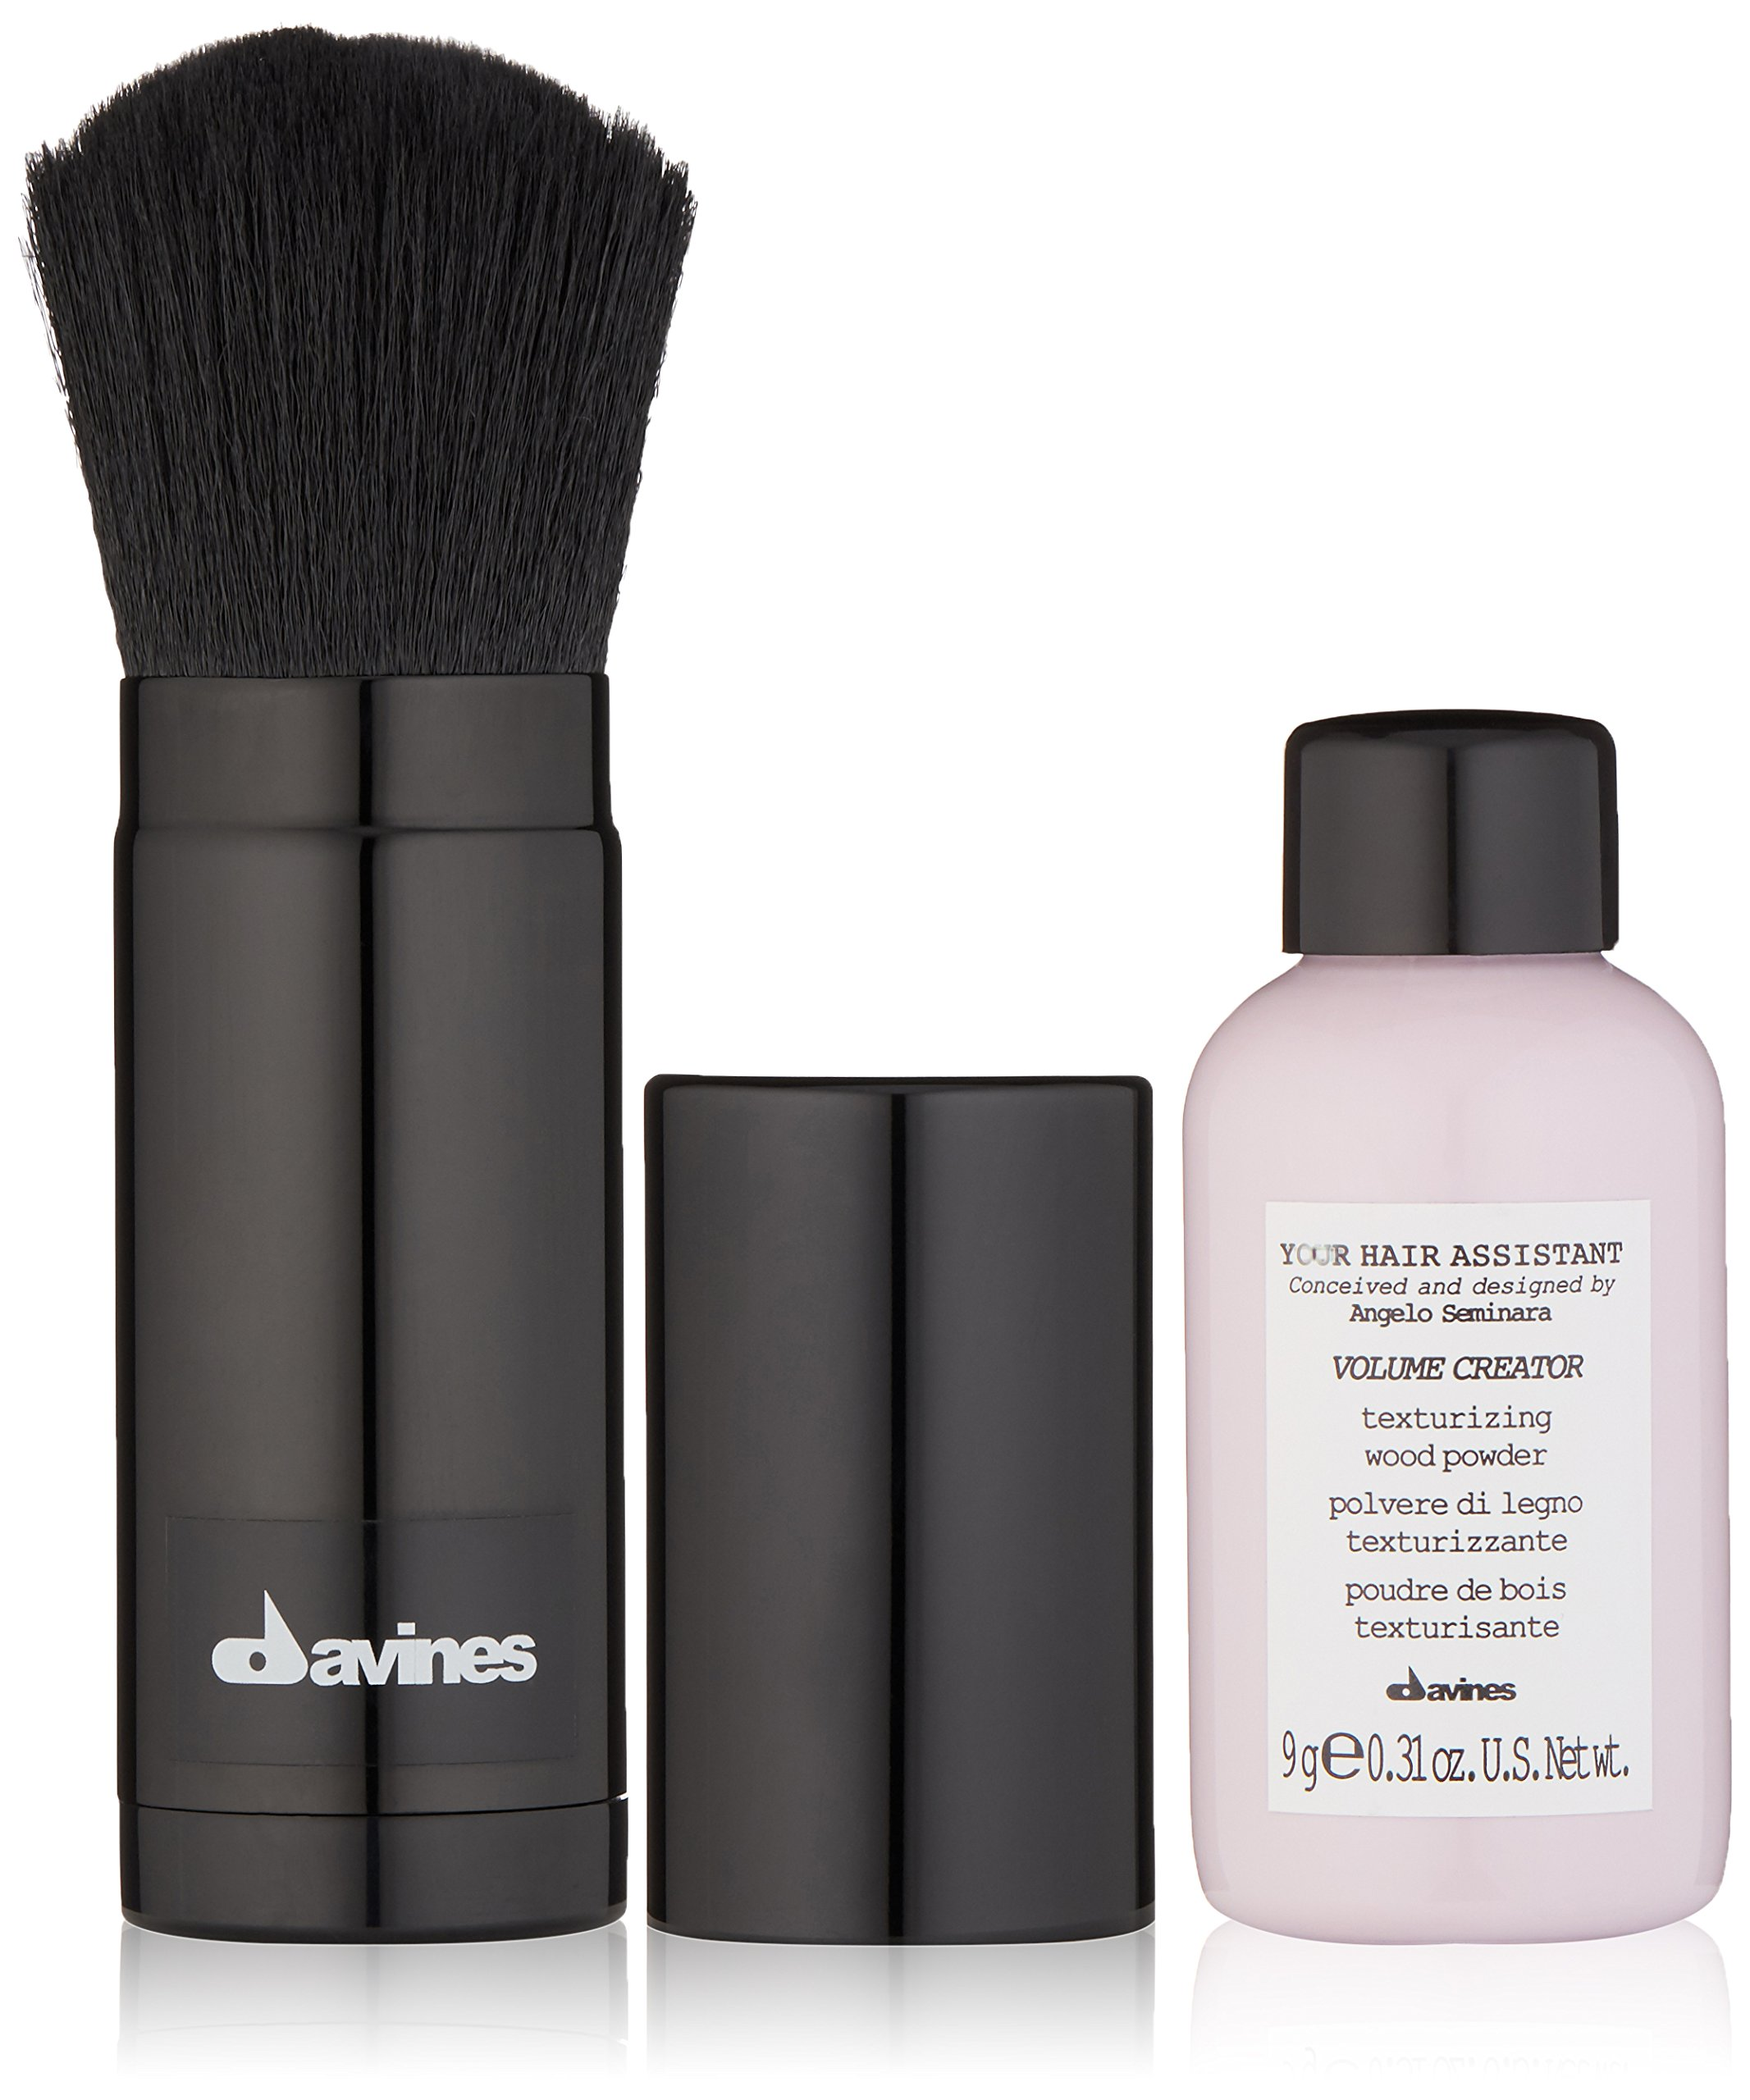 Davines Duo Pack, Your Hair Assistant Volume Creator and Brush